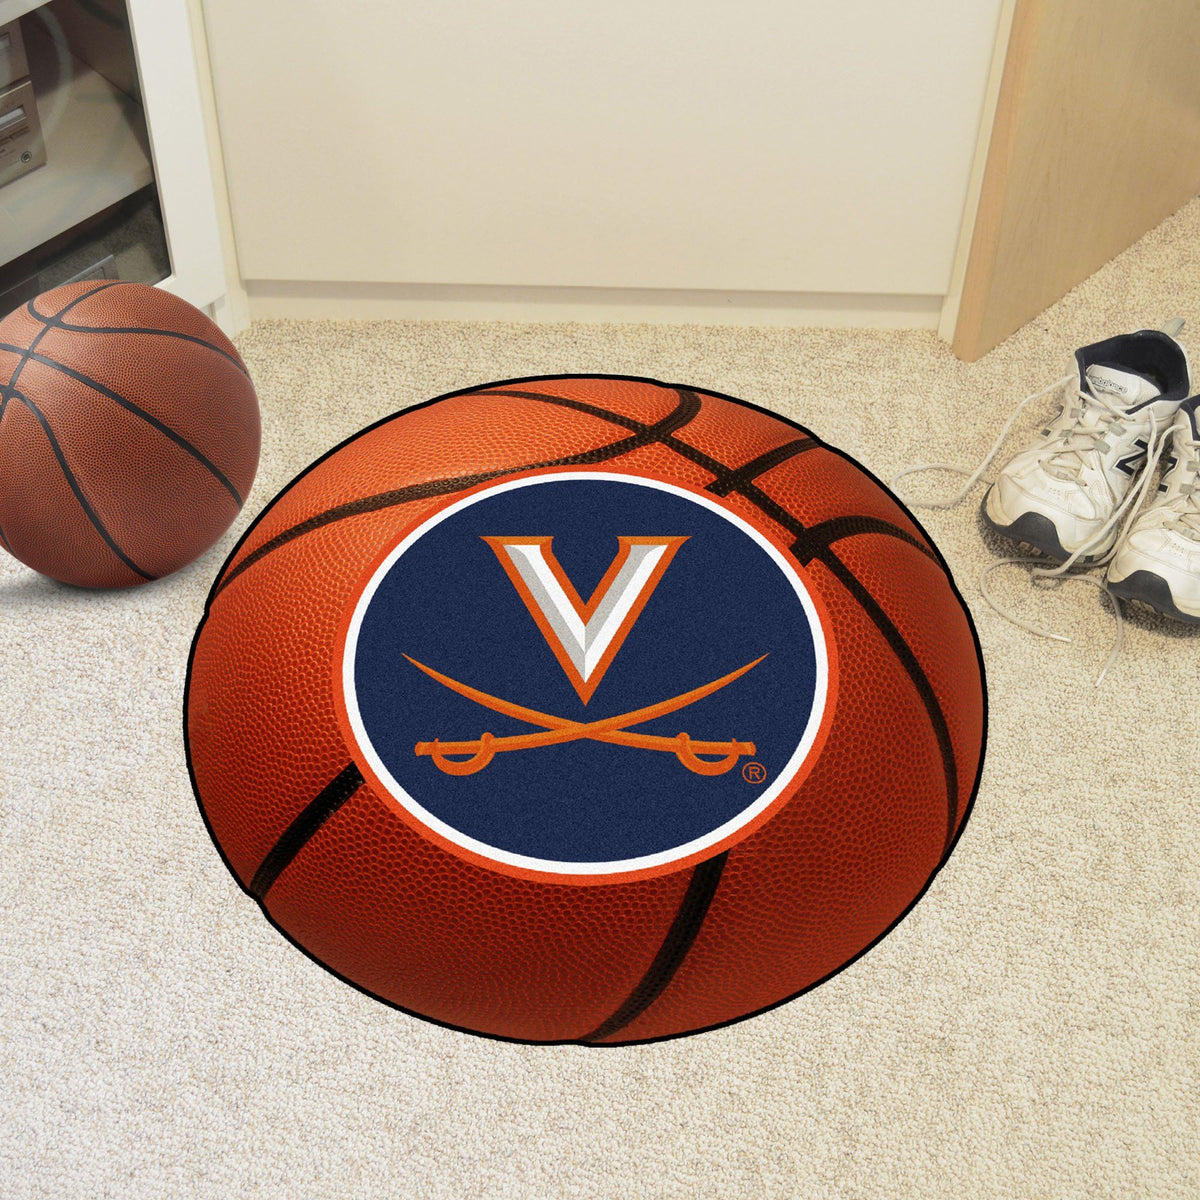 Collegiate - Basketball Mat: T - Z Collegiate Mats, Rectangular Mats, Basketball Mat, Collegiate, Home Fan Mats Virginia